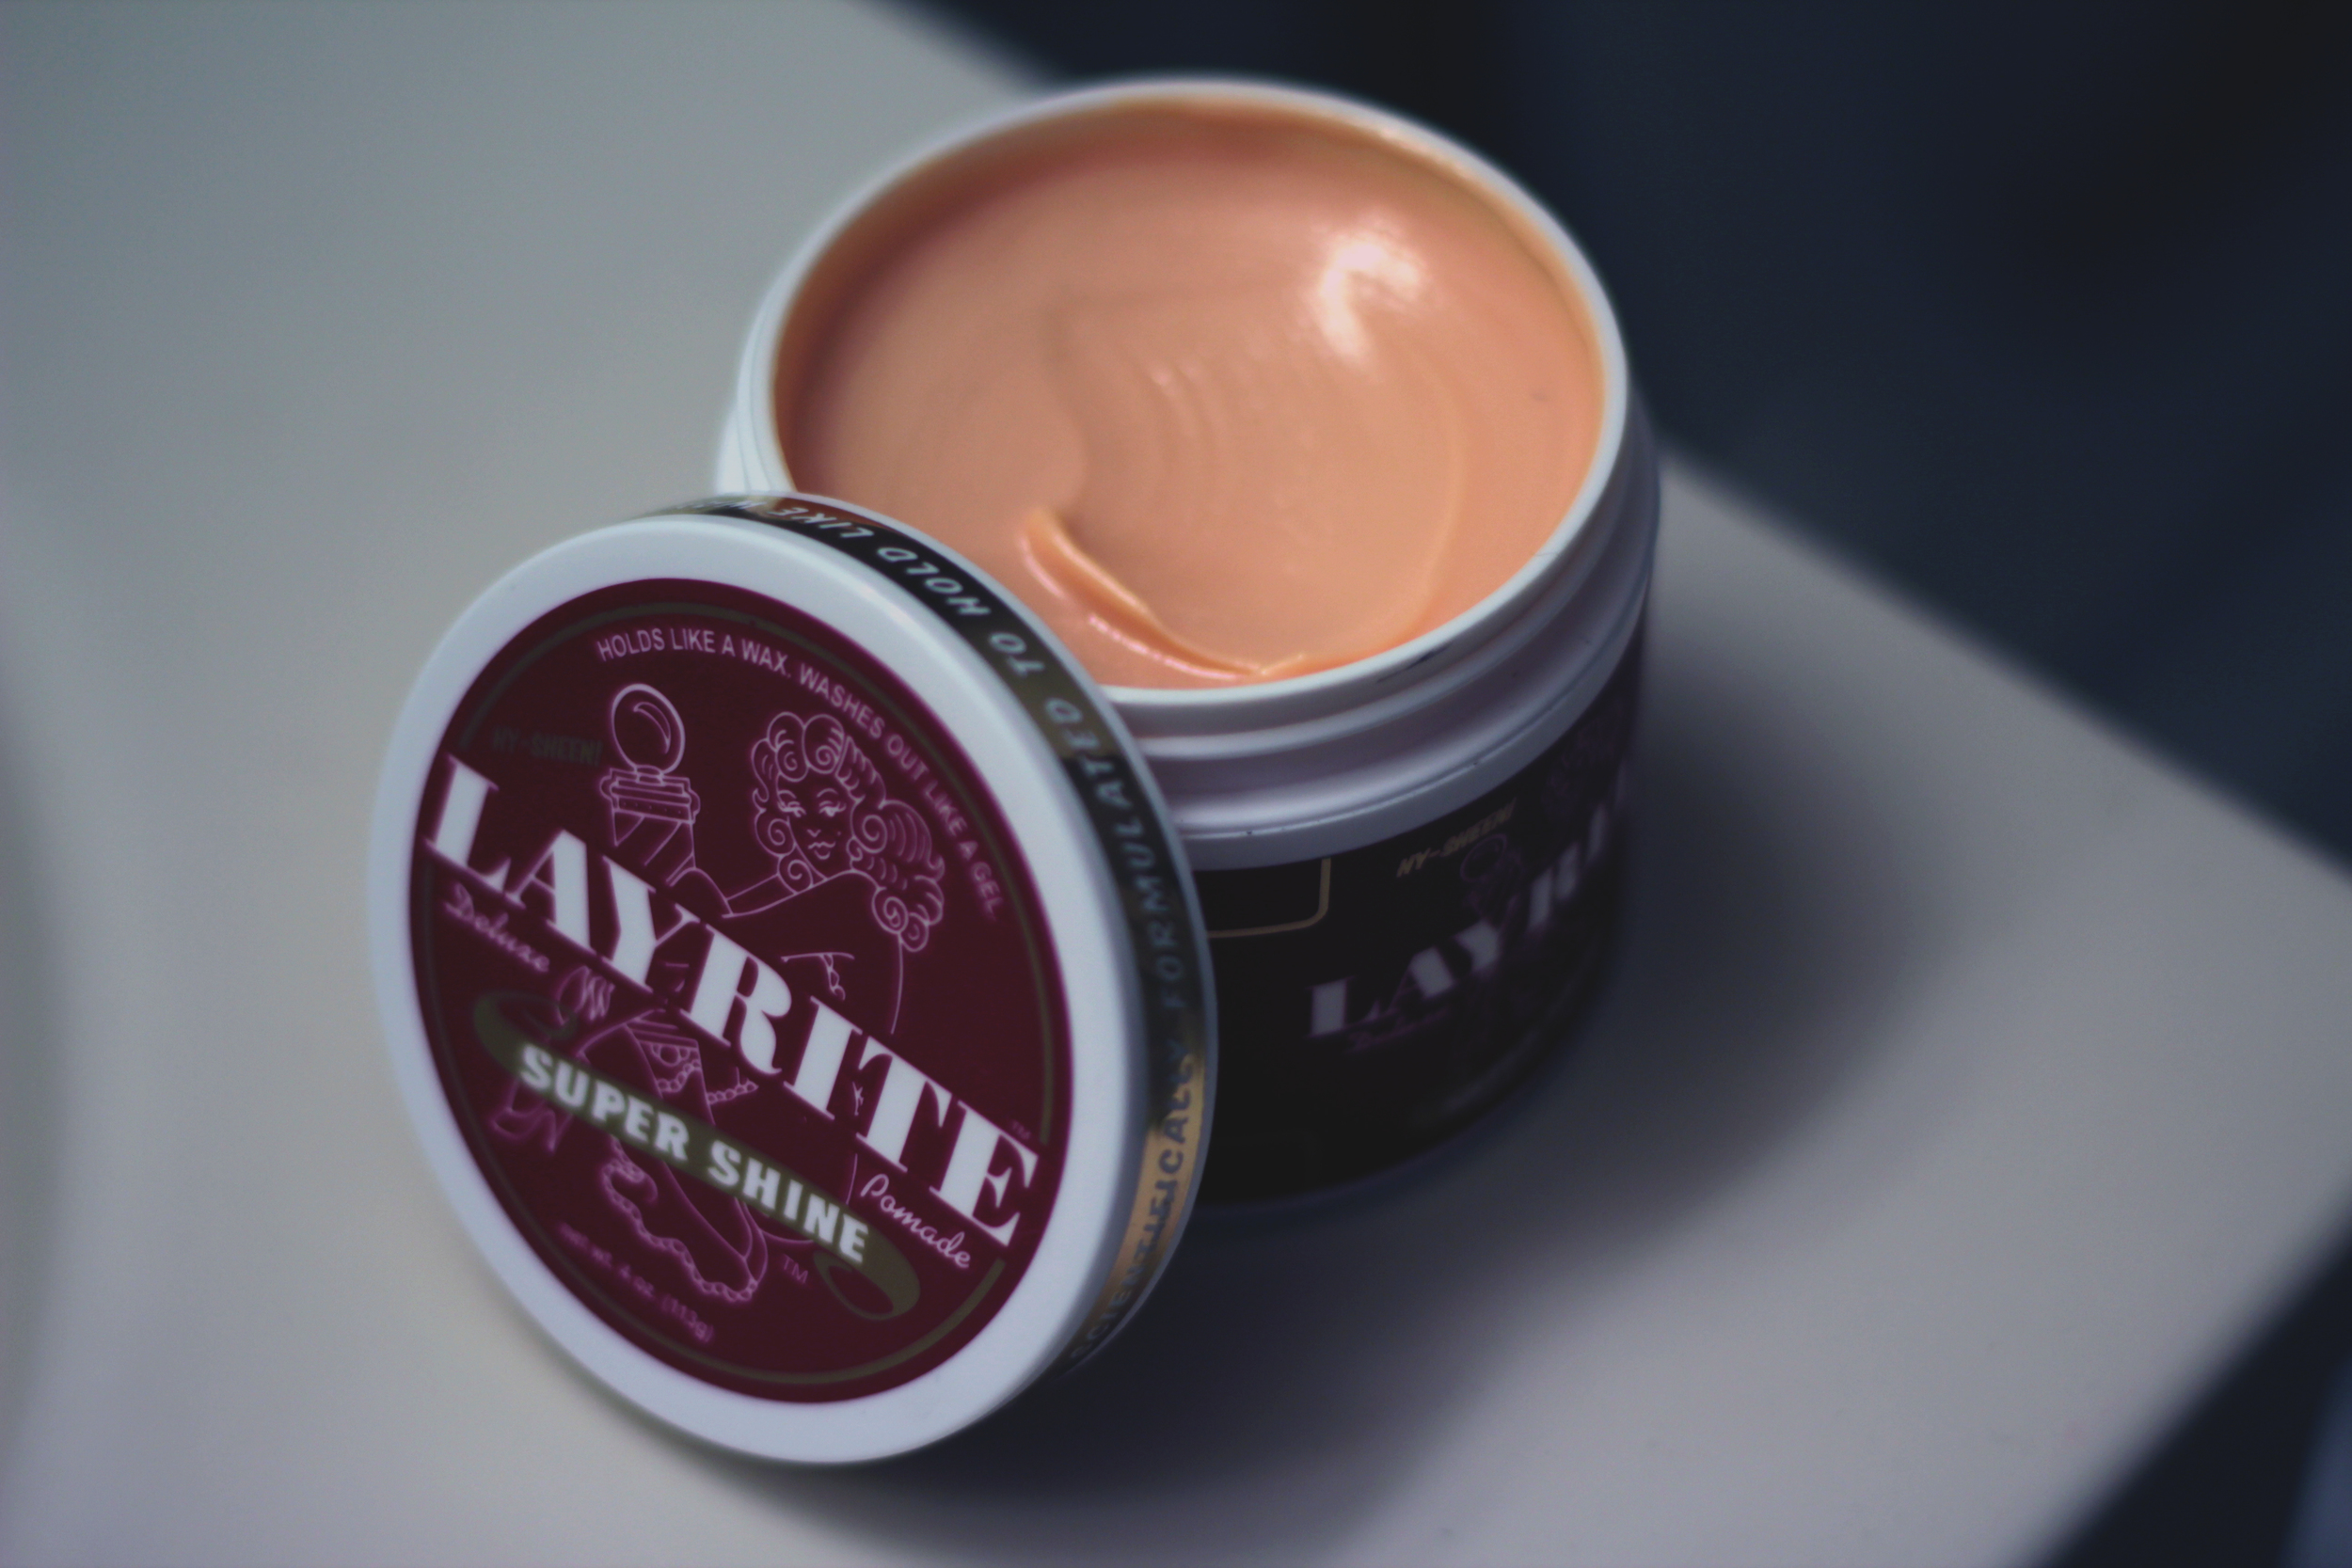 Layrite Deluxe Super Shine Pomade texture